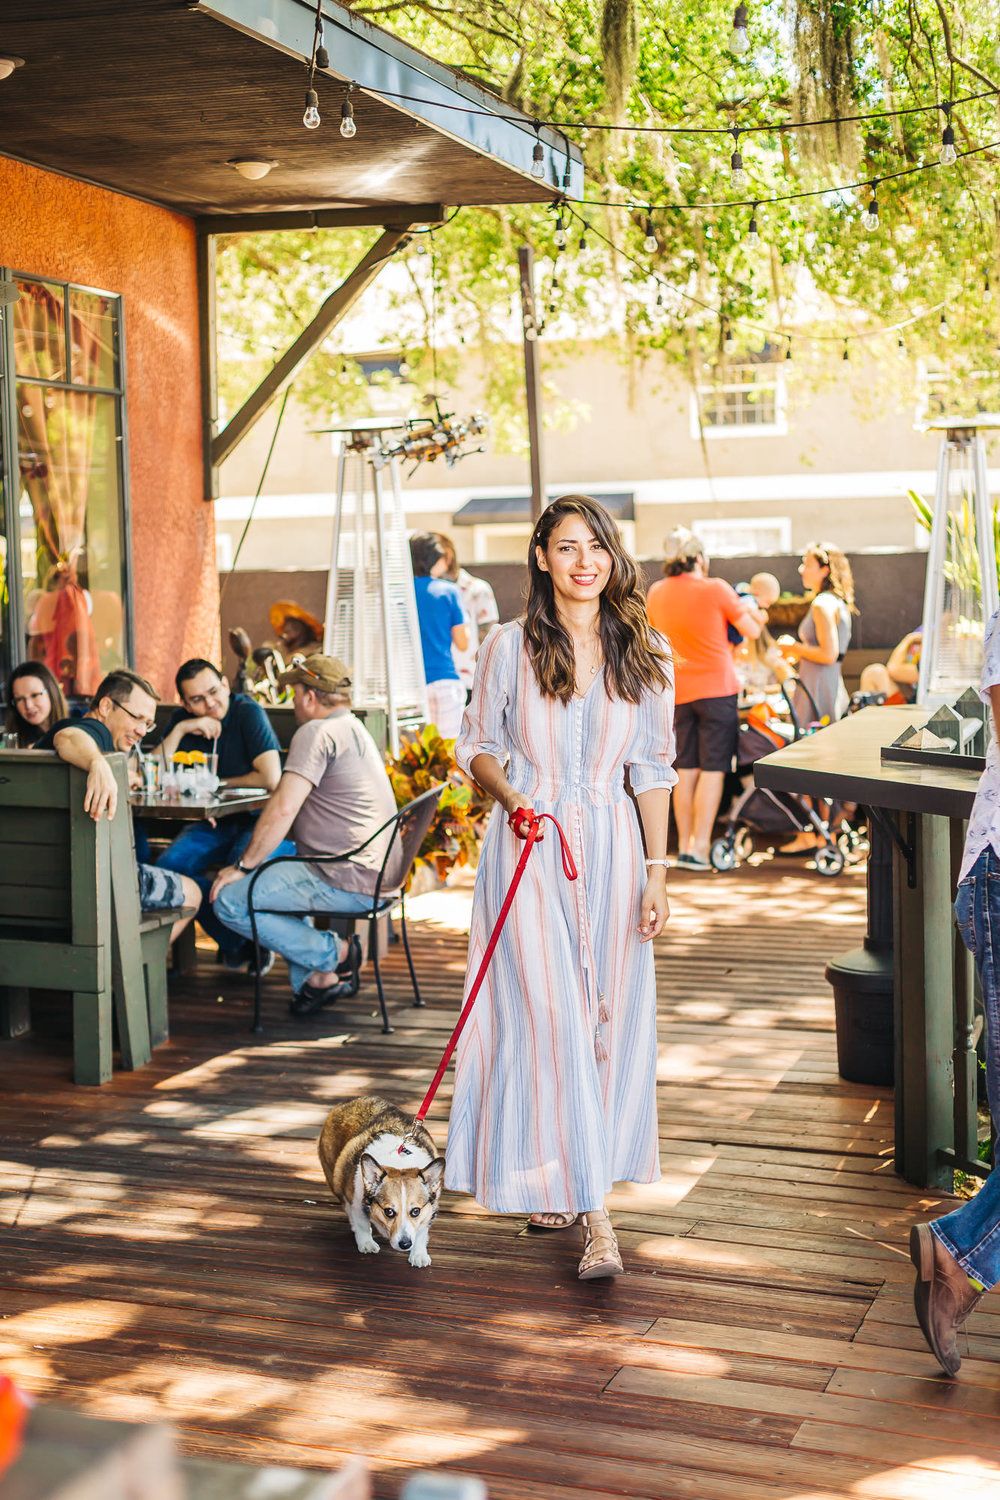 Kuma gets lots of attention at   Ella's Cafe